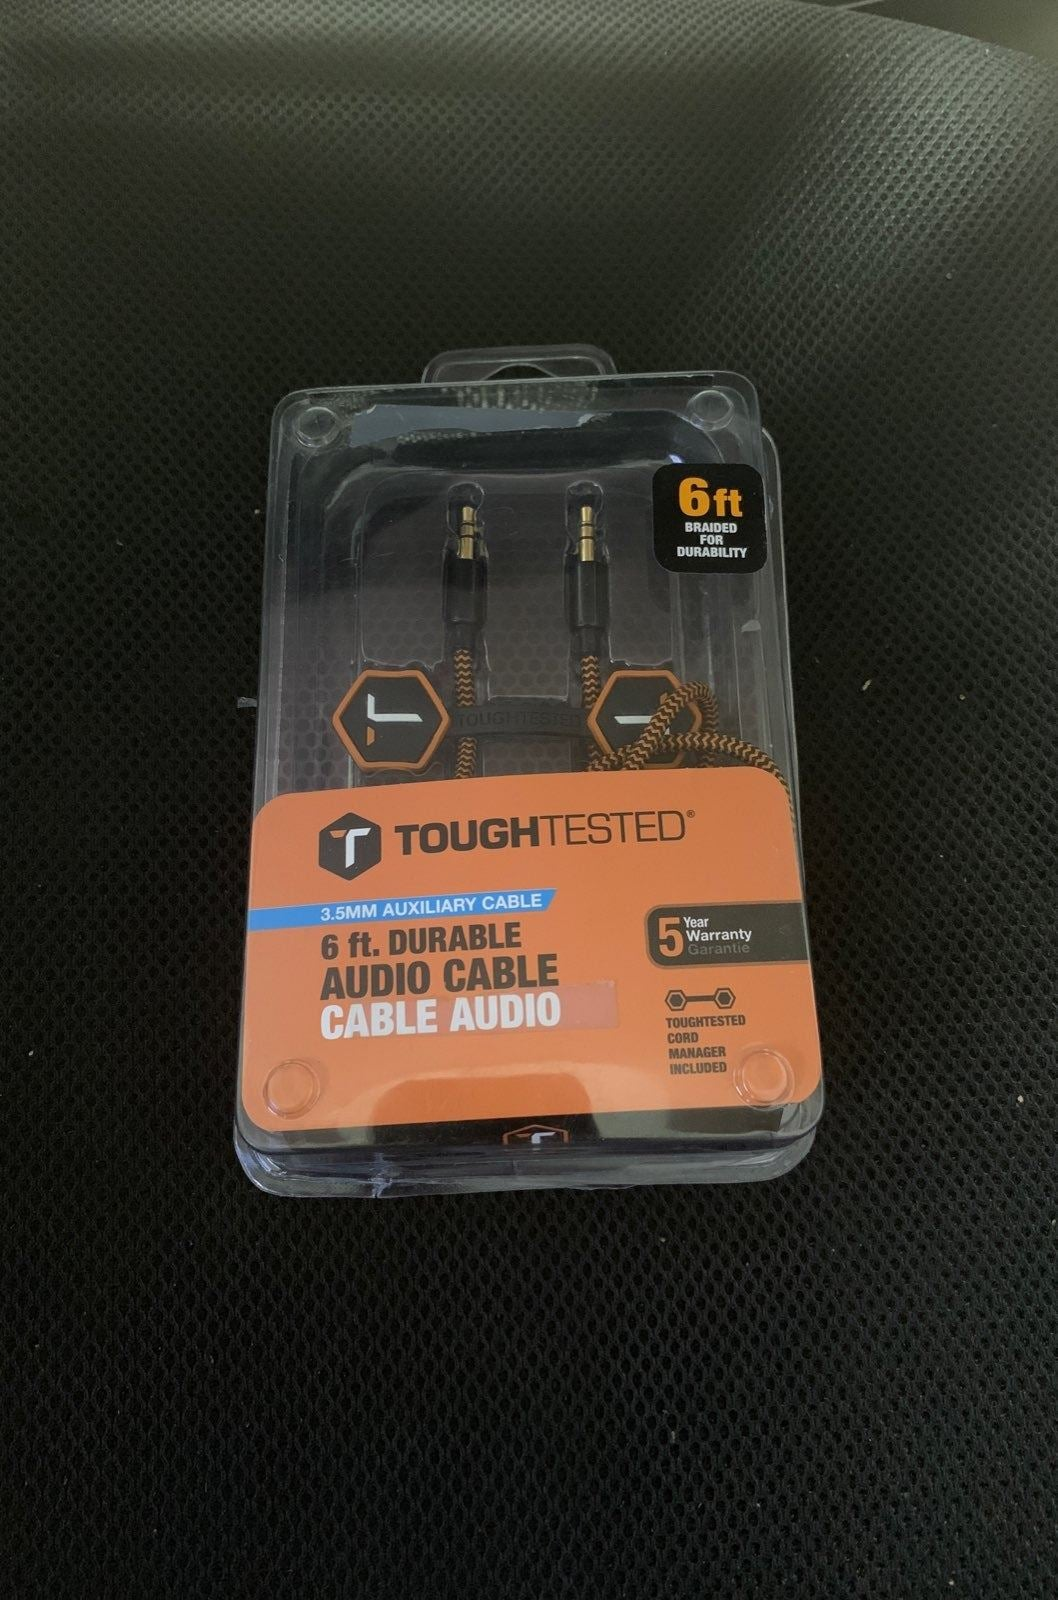 Toughtested 3.5mm Aux Cable 6 Foot